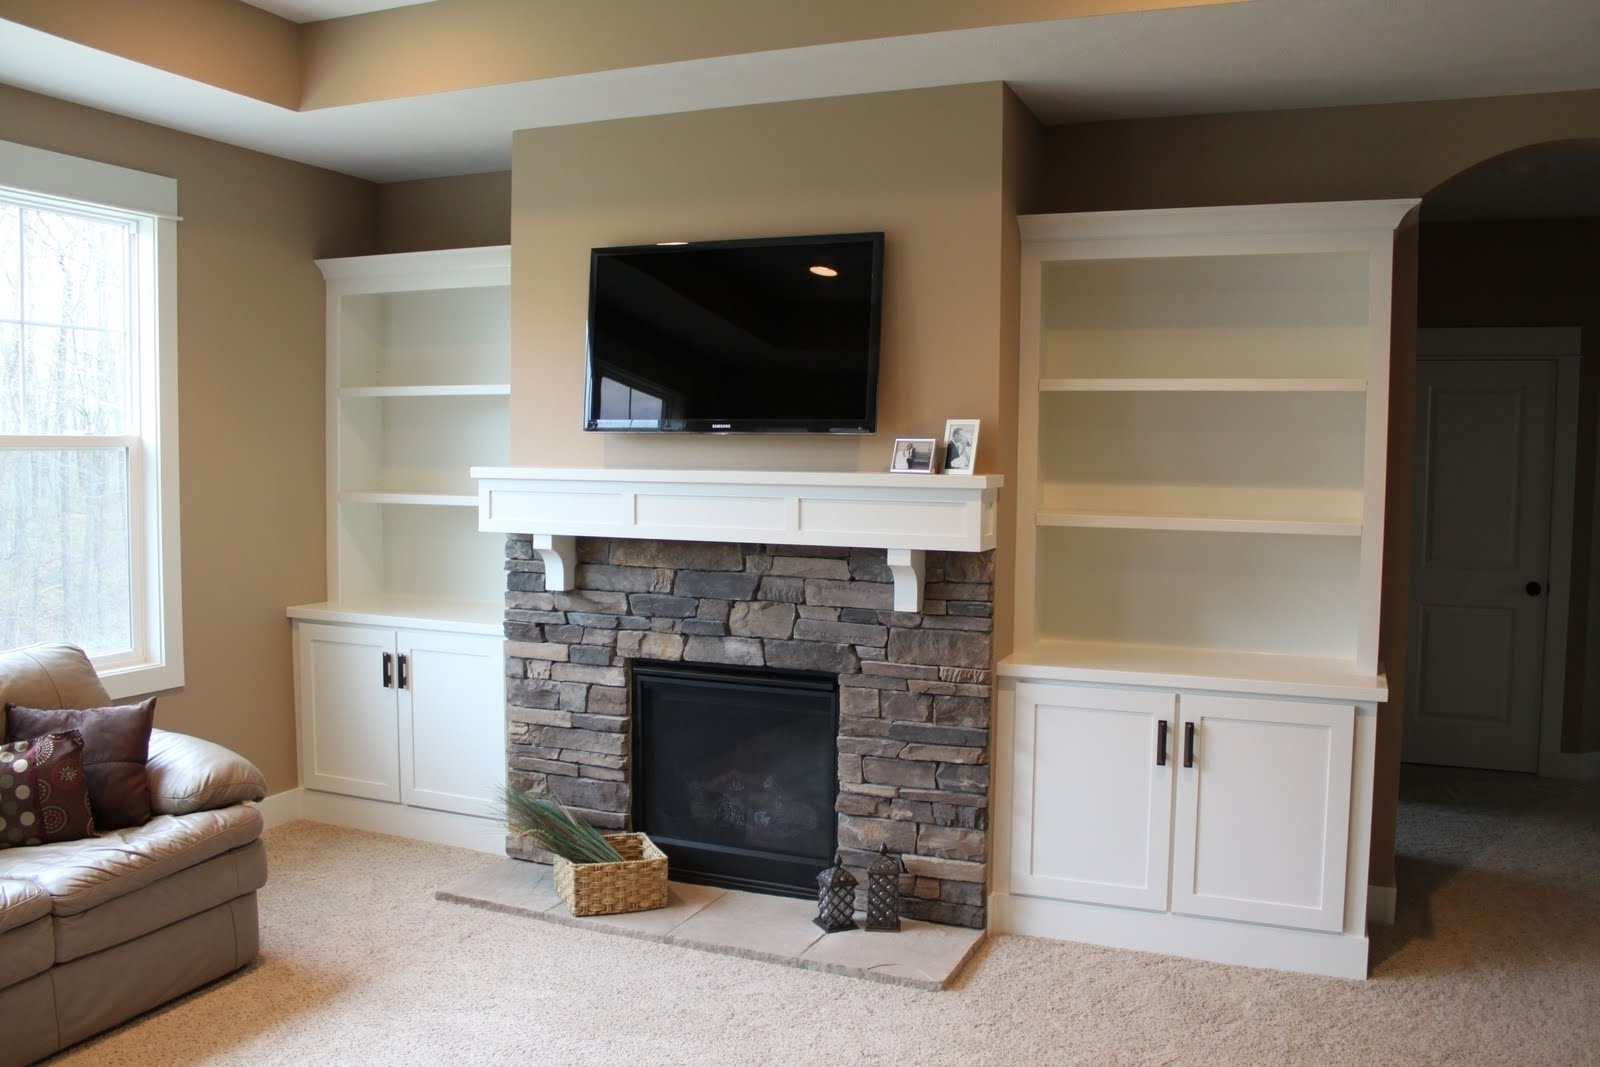 Built In Bookcases Kits Intended For Current Wall Units (View 4 of 15)